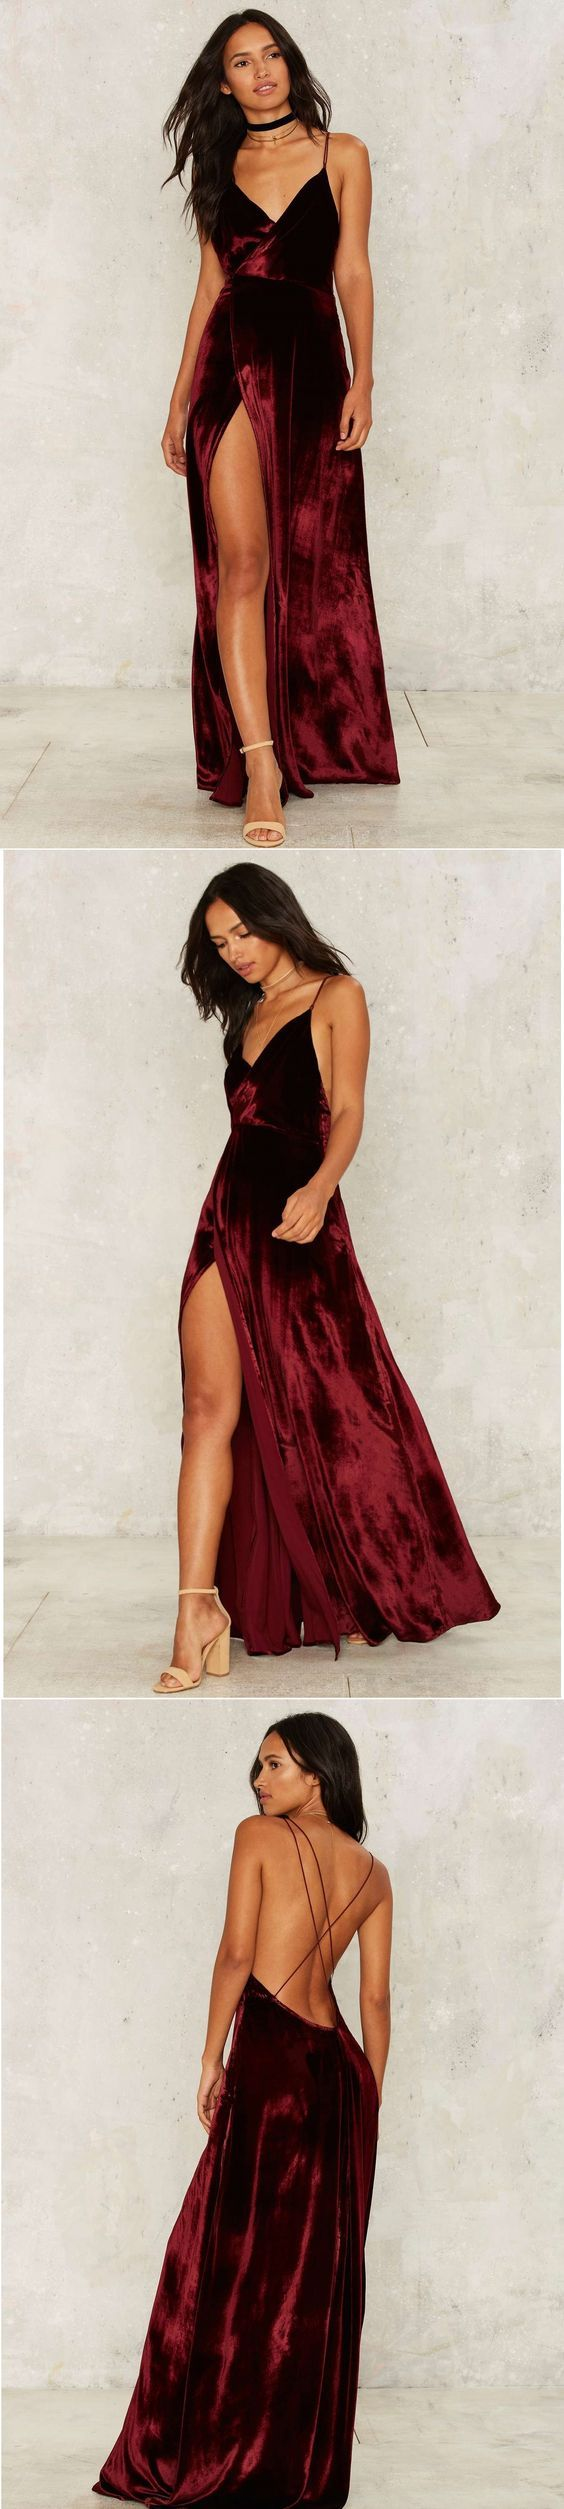 Modest Prom Dress,New Prom Dress,Long Prom Dresses,Burgundy Evening Dress,Sexy Spaghetti Straps Slit Evening Dresses